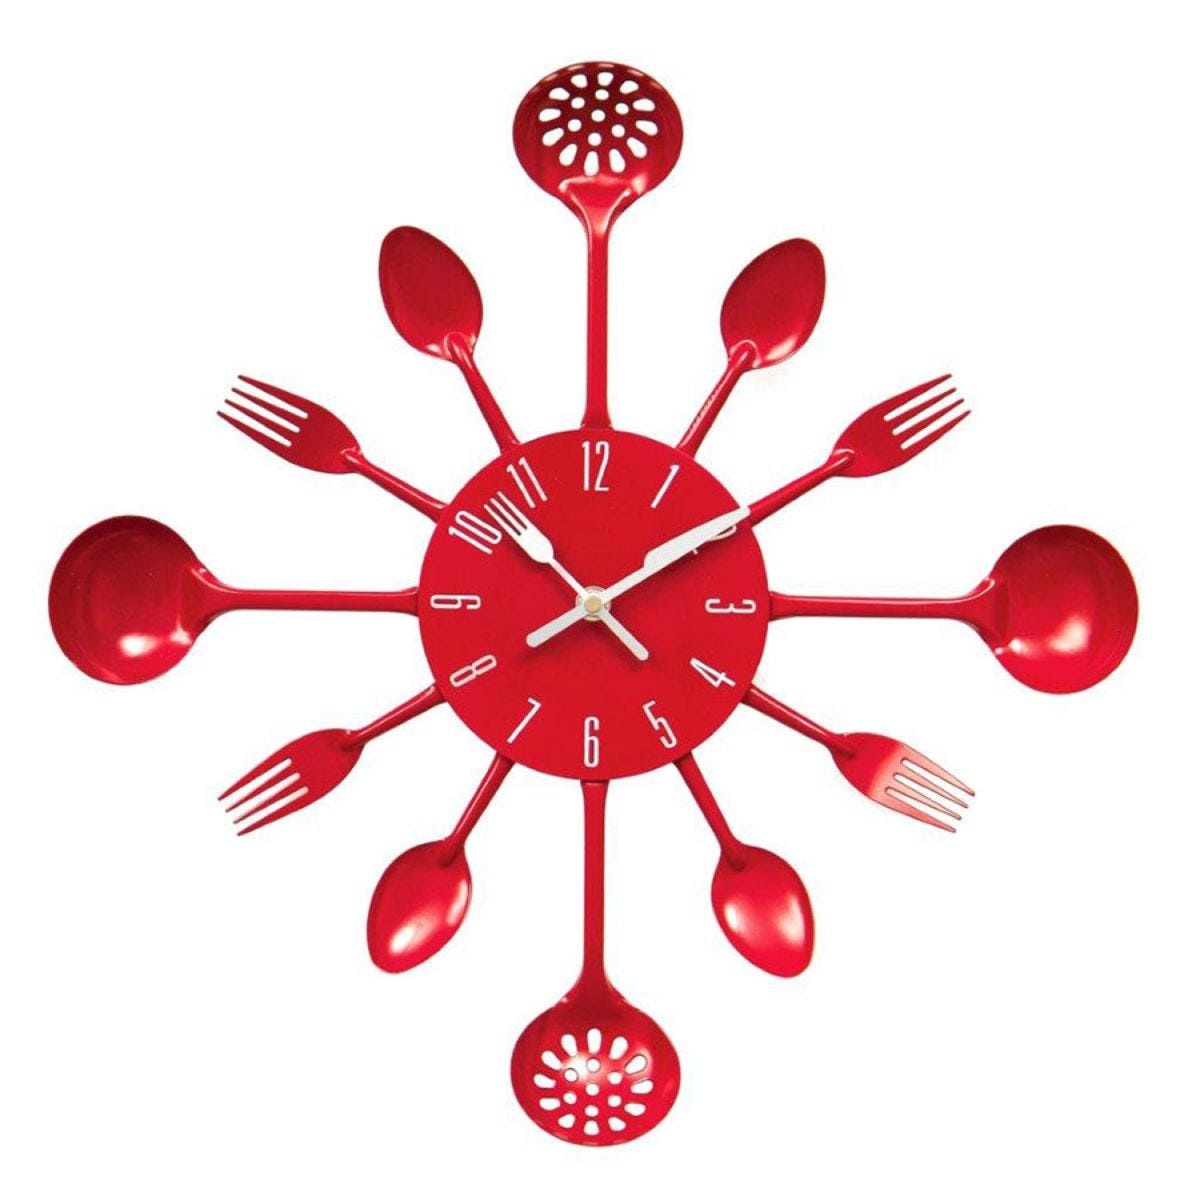 Cutlery Metal Wall Clock - Red